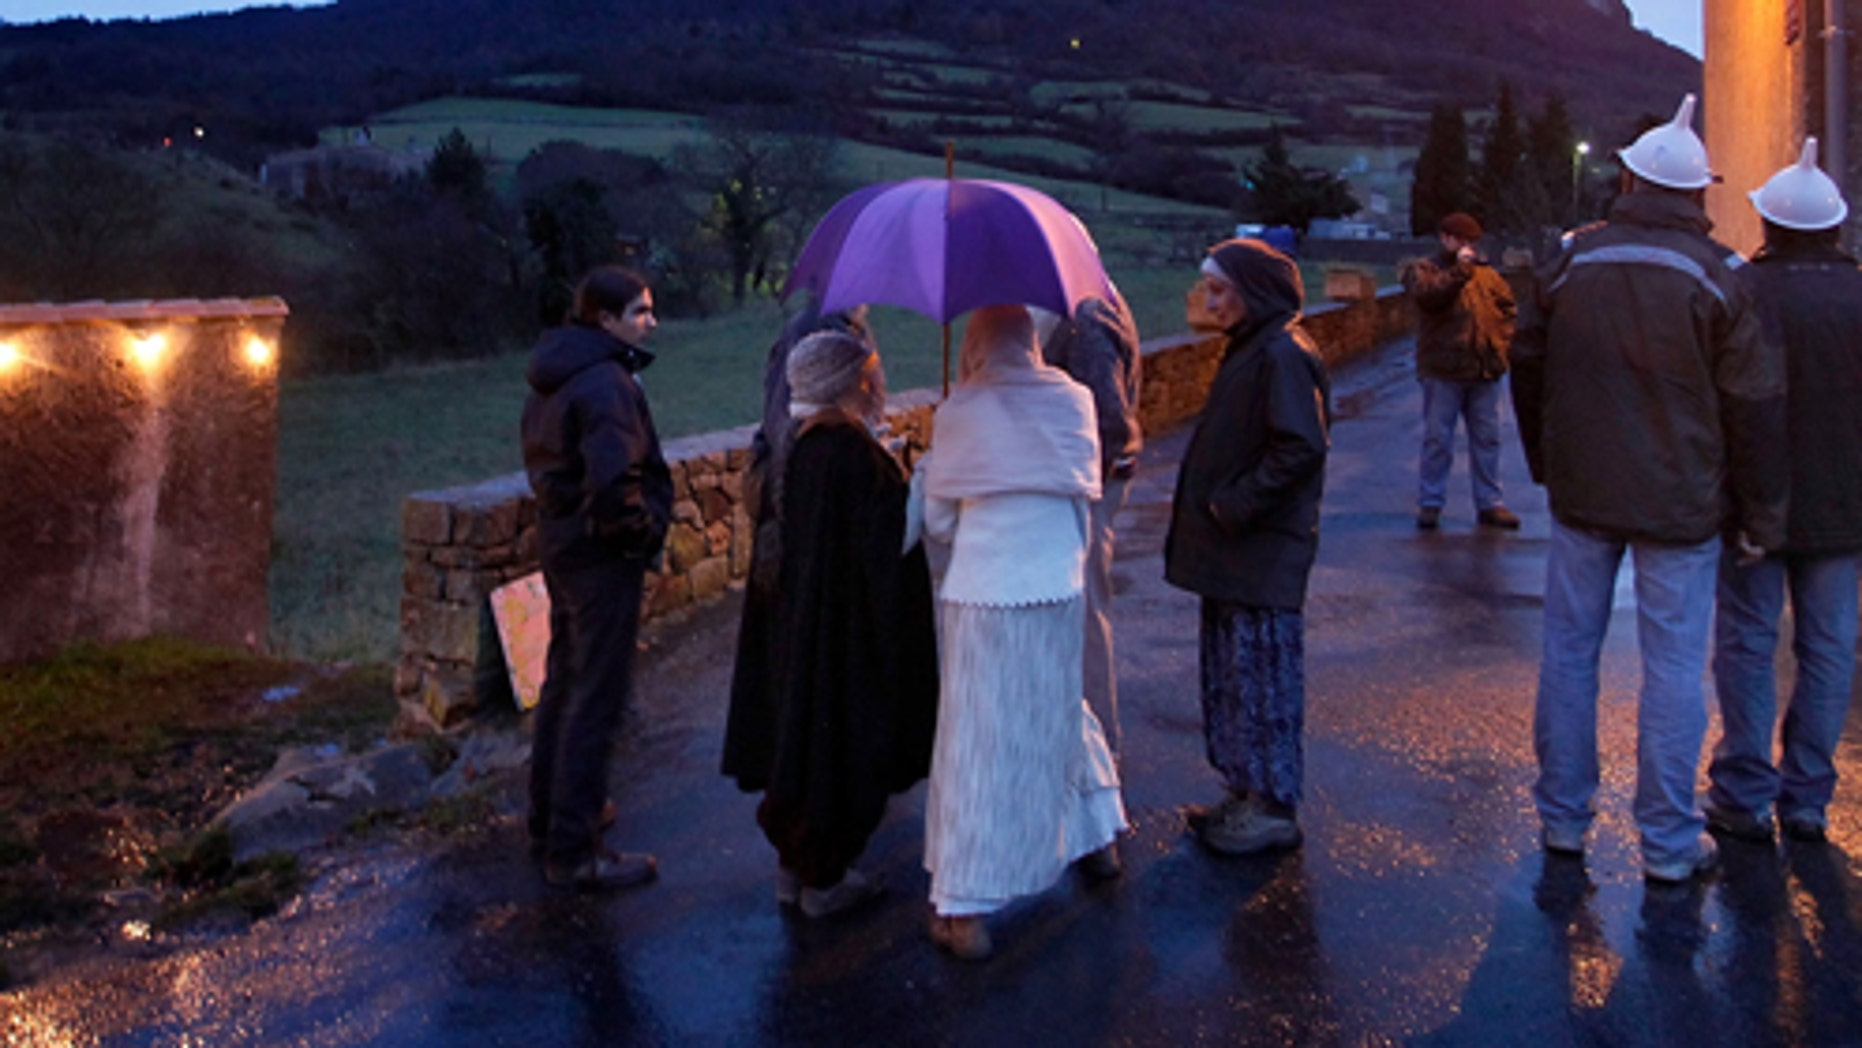 People gather at dusk in Bugarath, a small village in the foothills of the Pyrenees on December 20, 2012 in Bugarach, France.